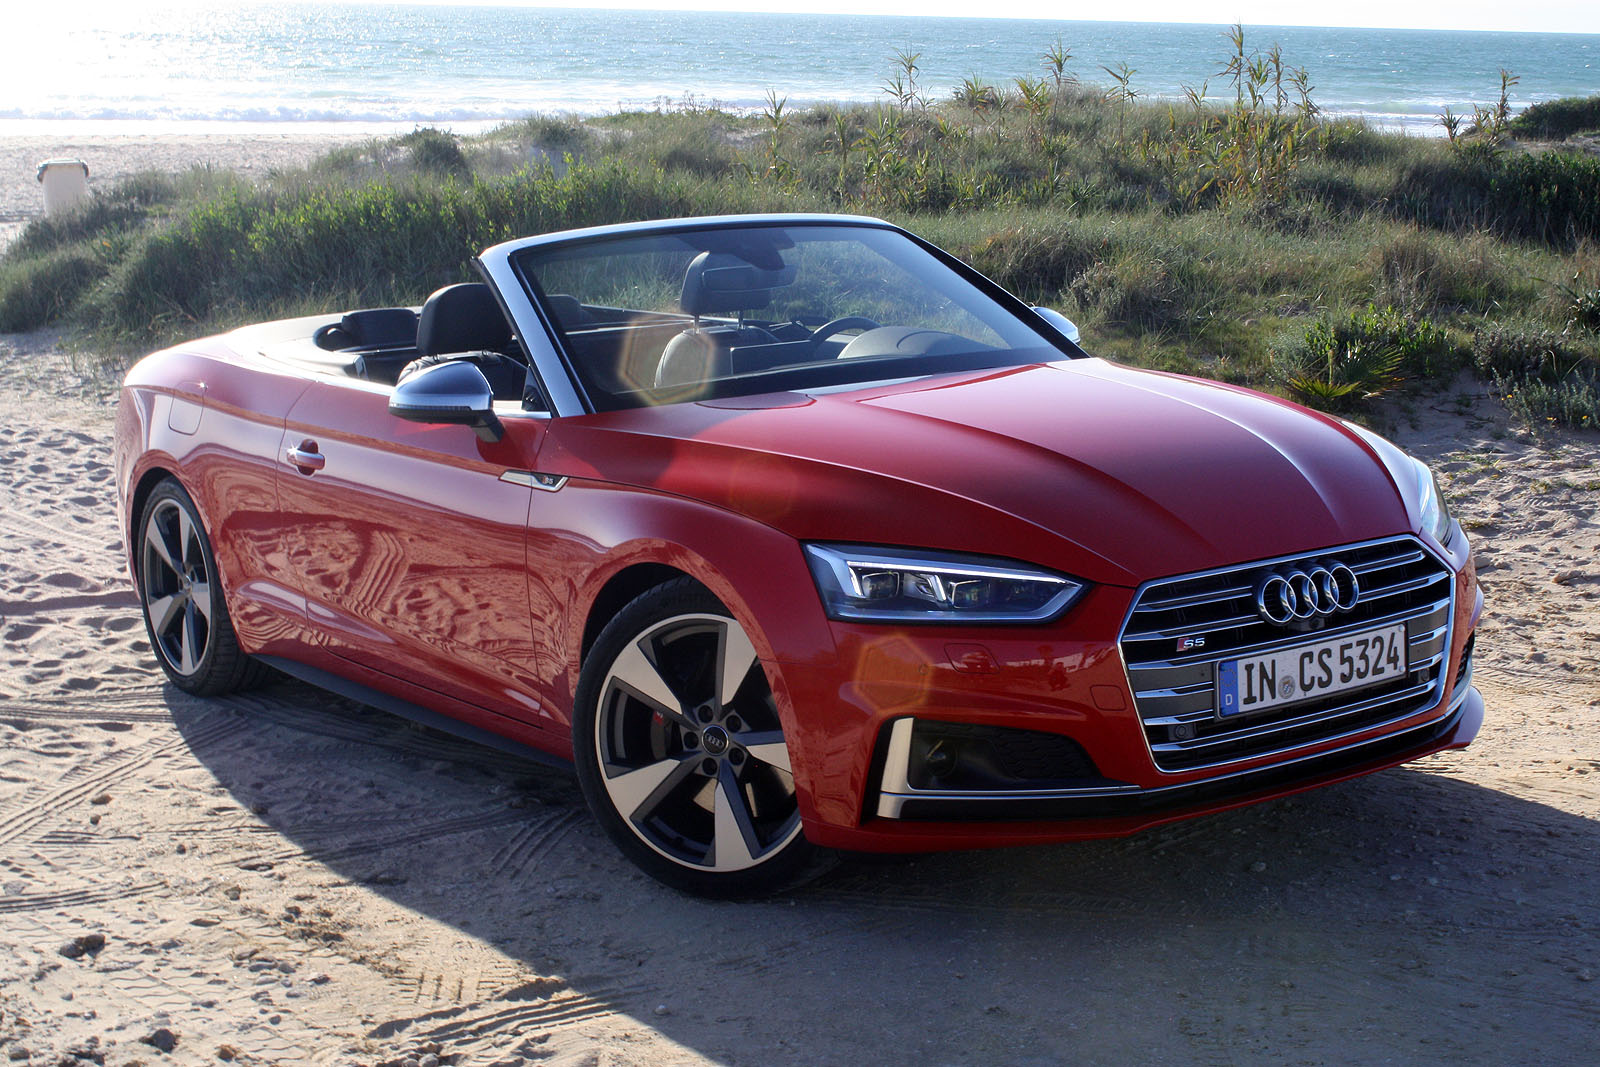 2018 Audi S5 Cabriolet And A5 32